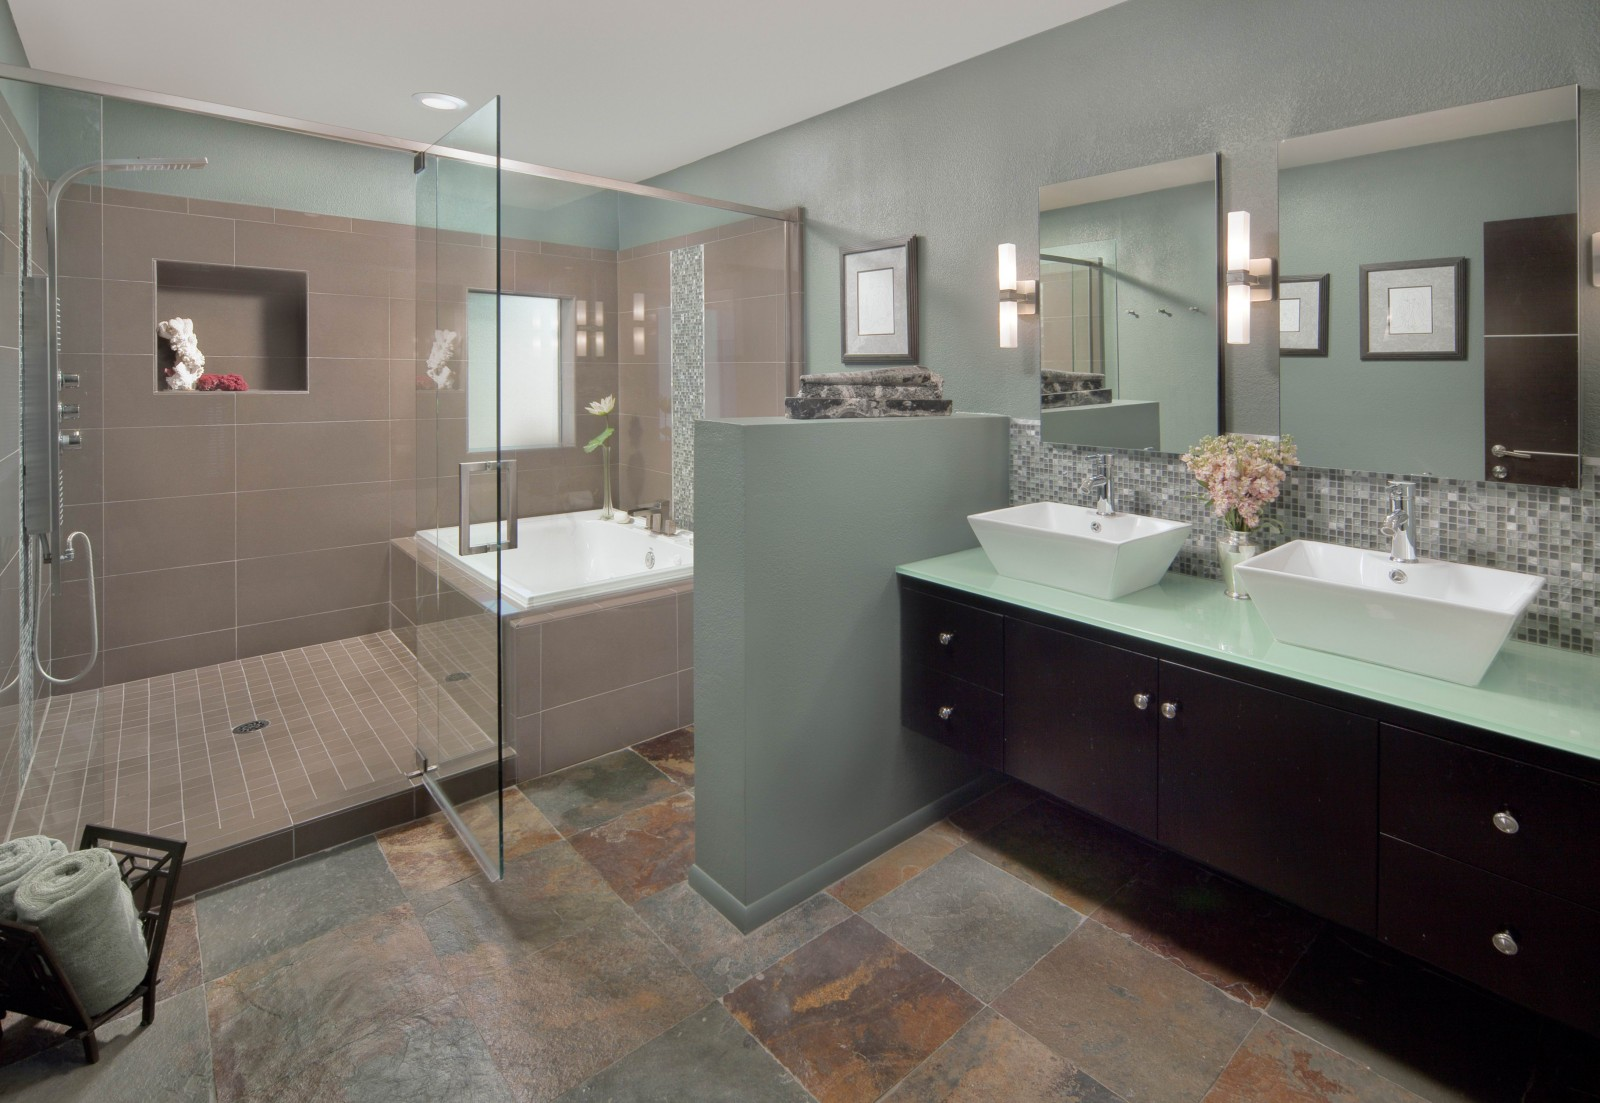 Revamping your master bathroom peter mickus for Bathroom renovation designs ideas